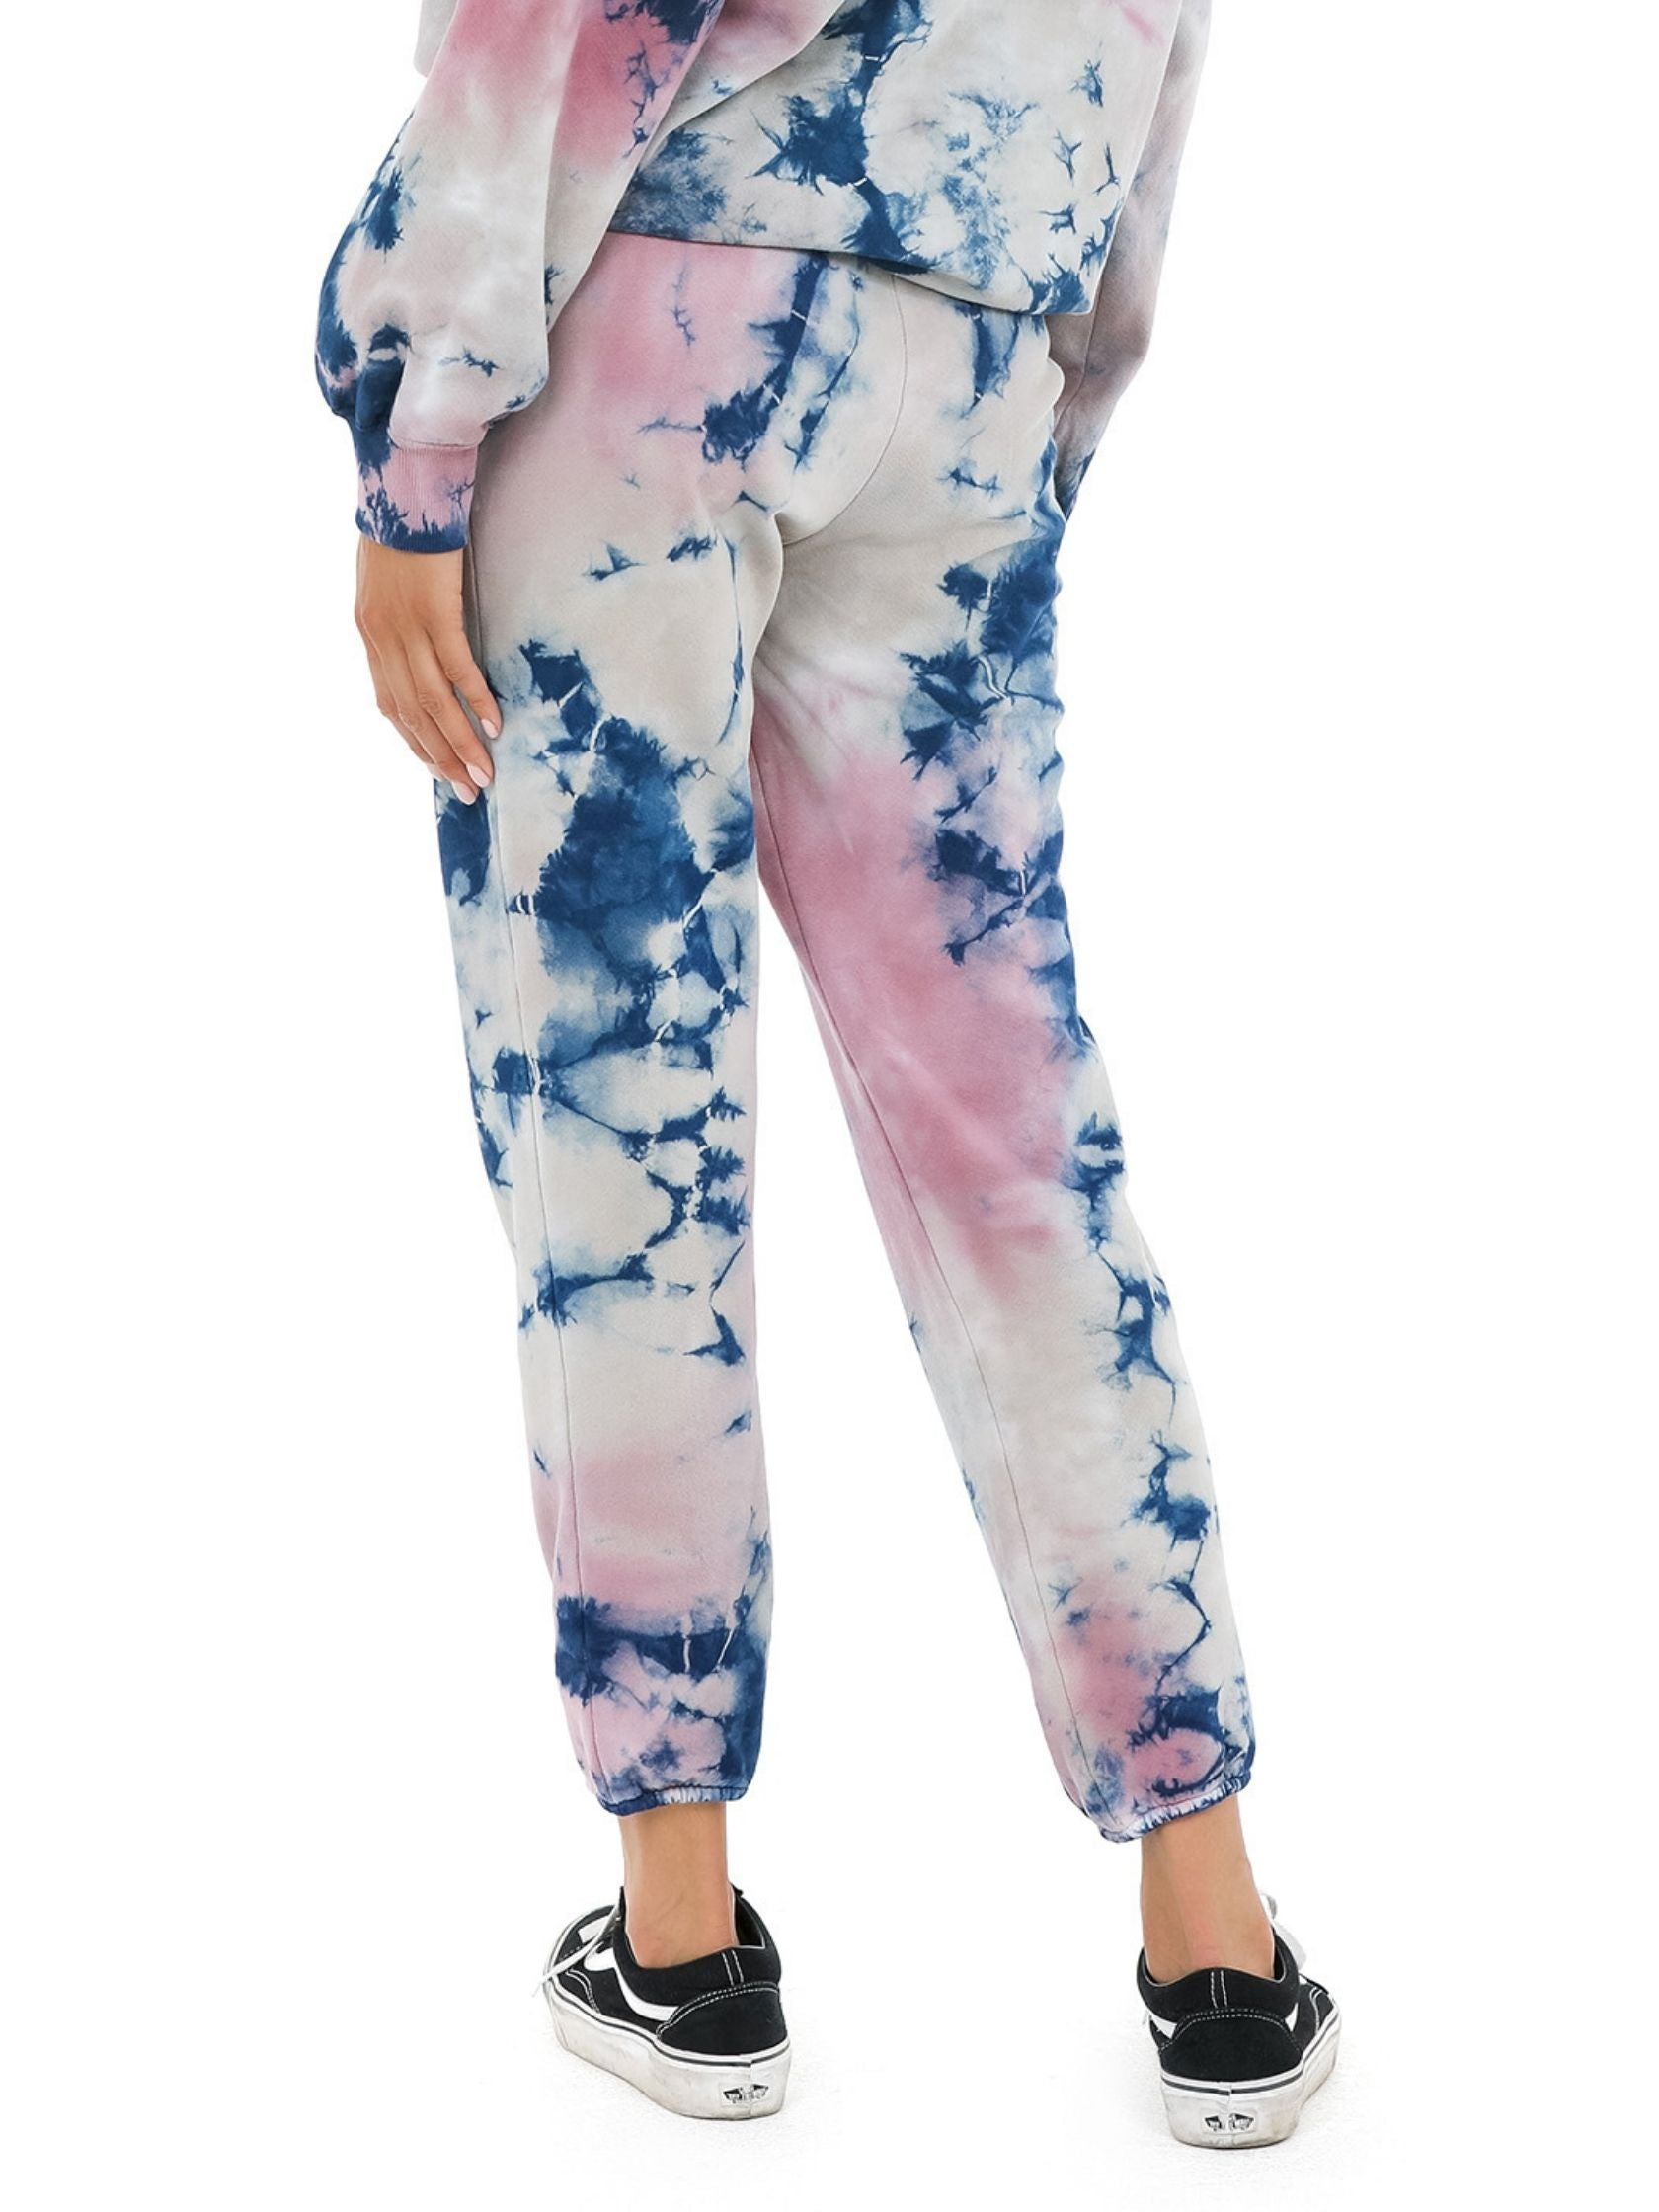 Women outfit in a joggers rental from DAYDREAMER called Rouge Storm Tie Dye Jogger